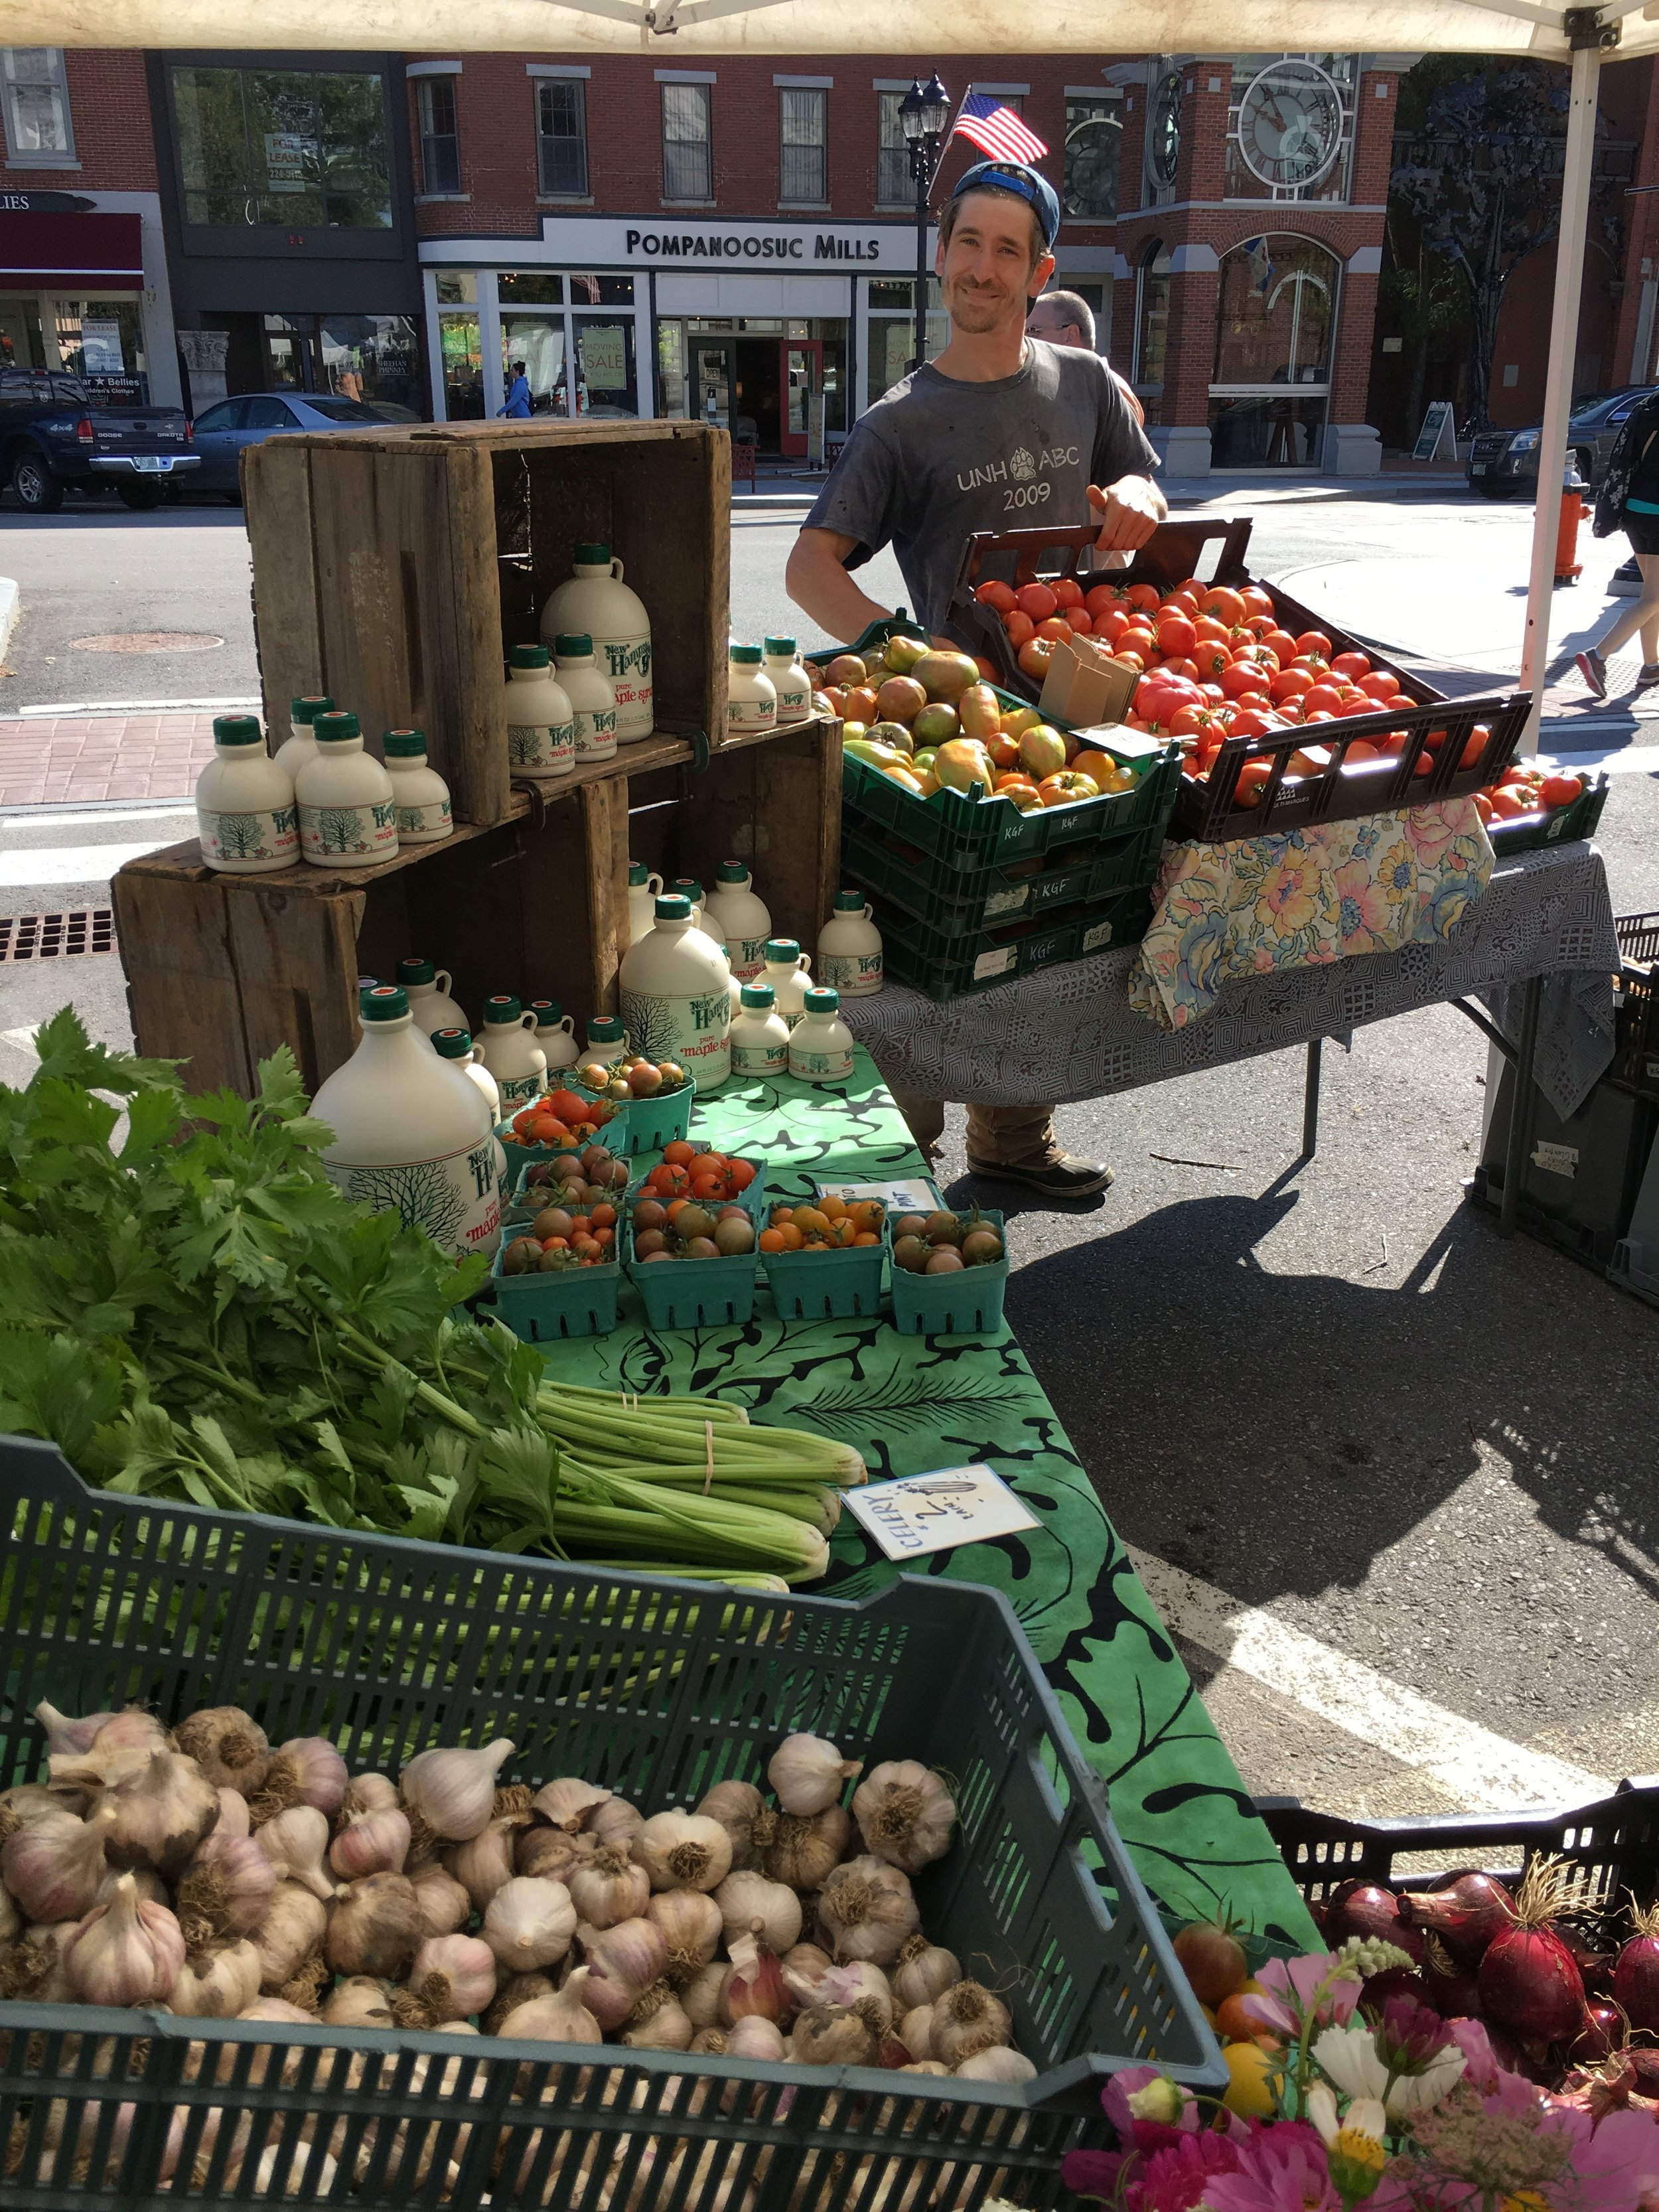 At the Concord Farmers' Market